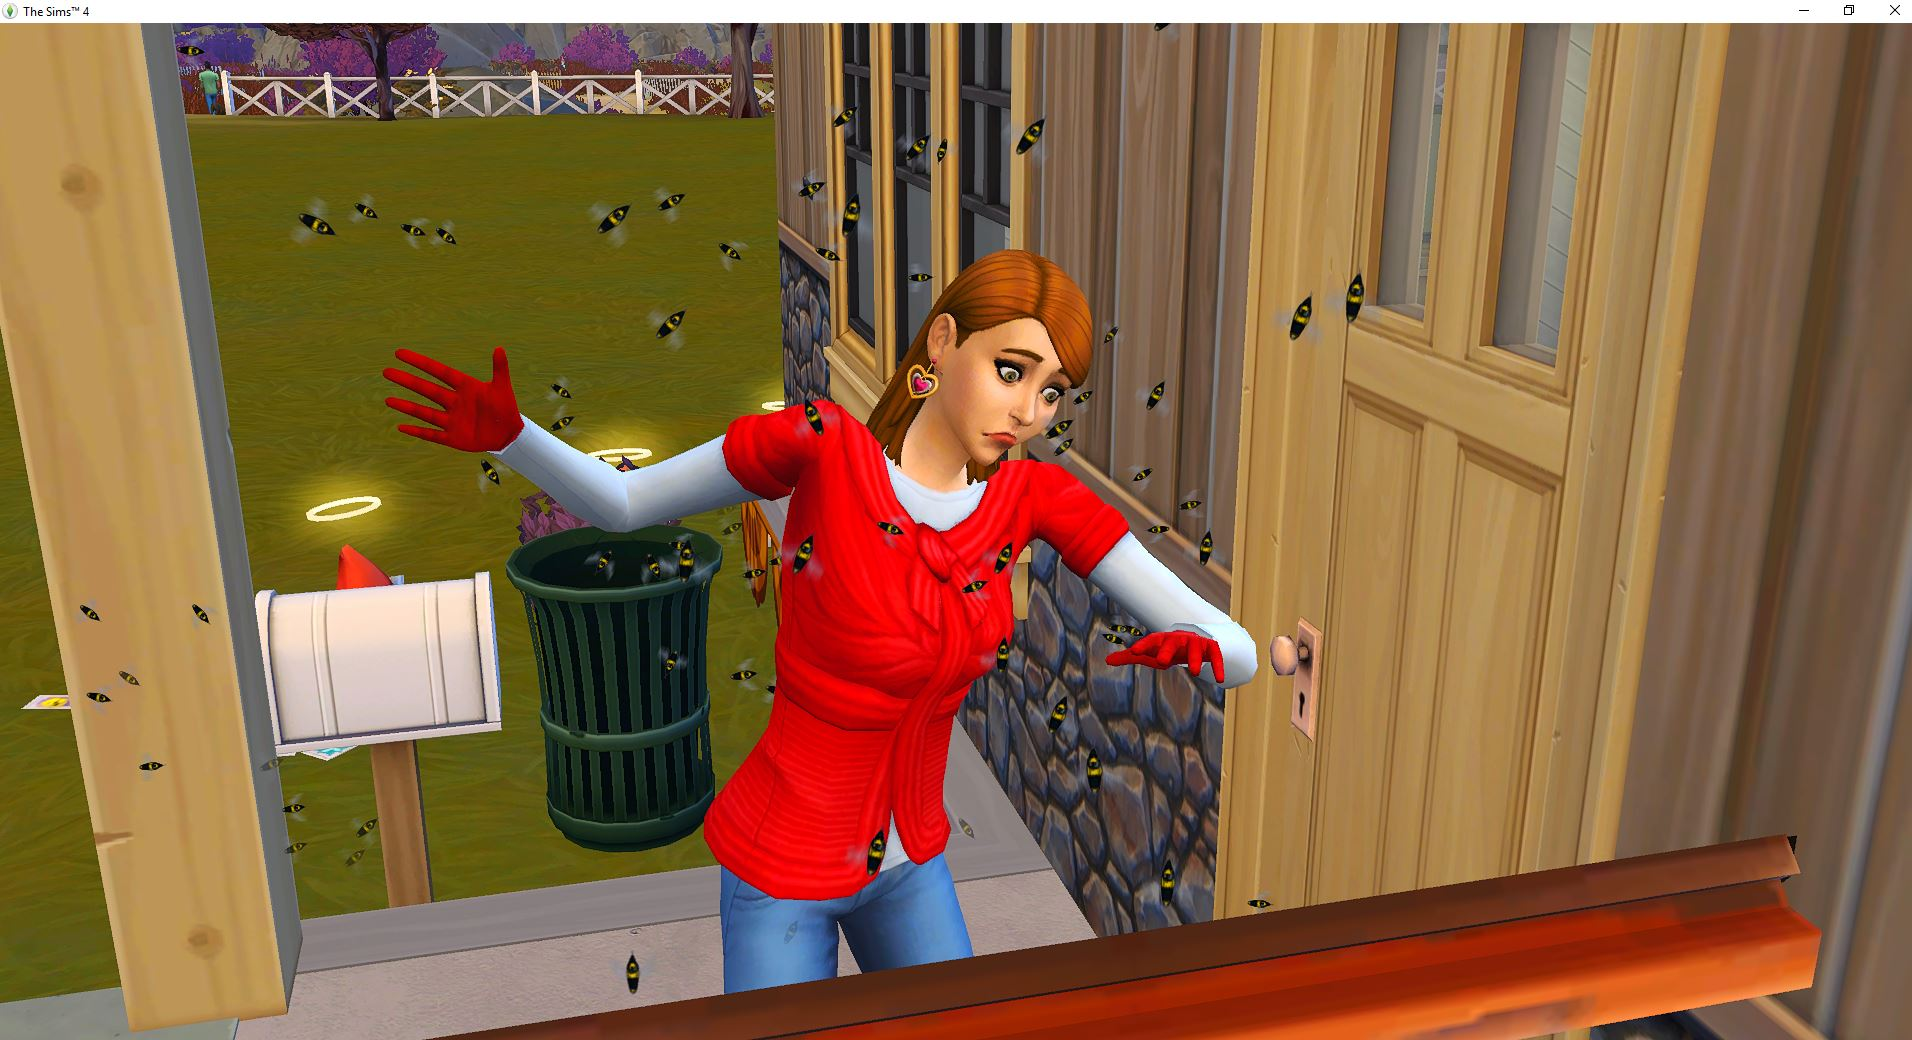 2019-01-04 21_02_08-The Sims™ 4